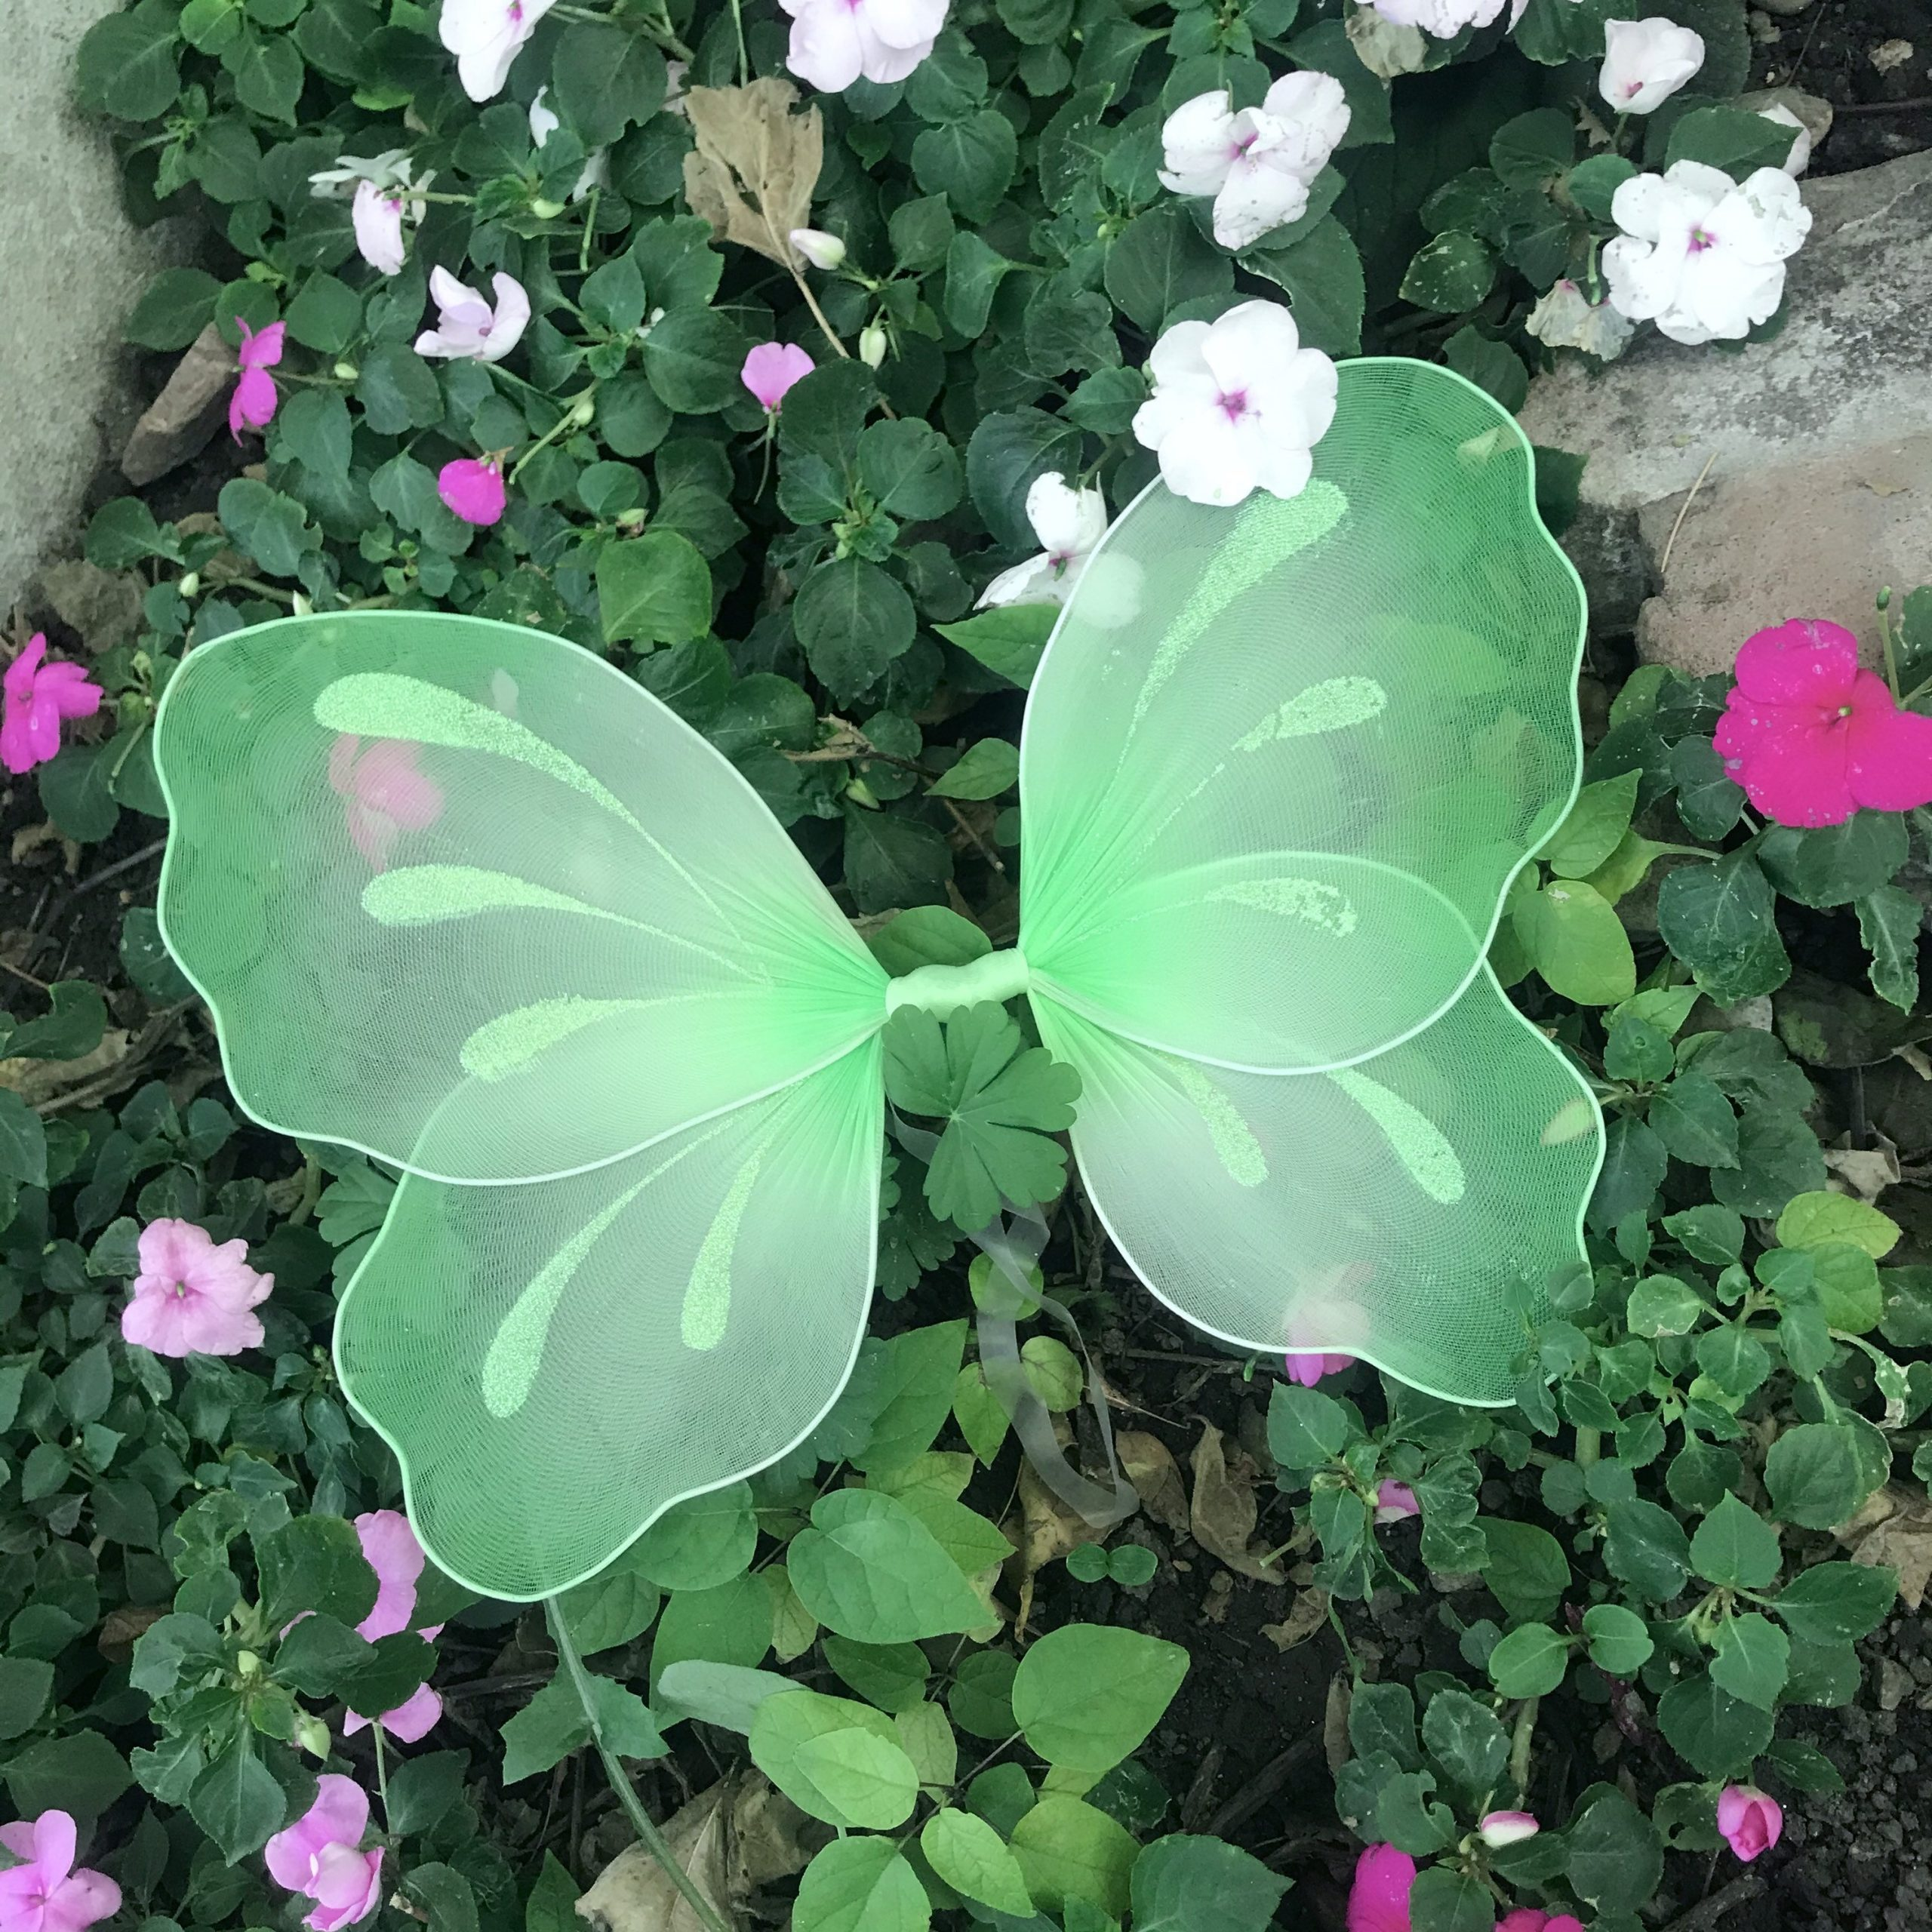 Green Fairy Wings Butterfly Halloween Costume Rustic Woodland Wedding Renaissance Teen Adult Cosplay Outfit Tinkerbell Pixie Flower Girl Set